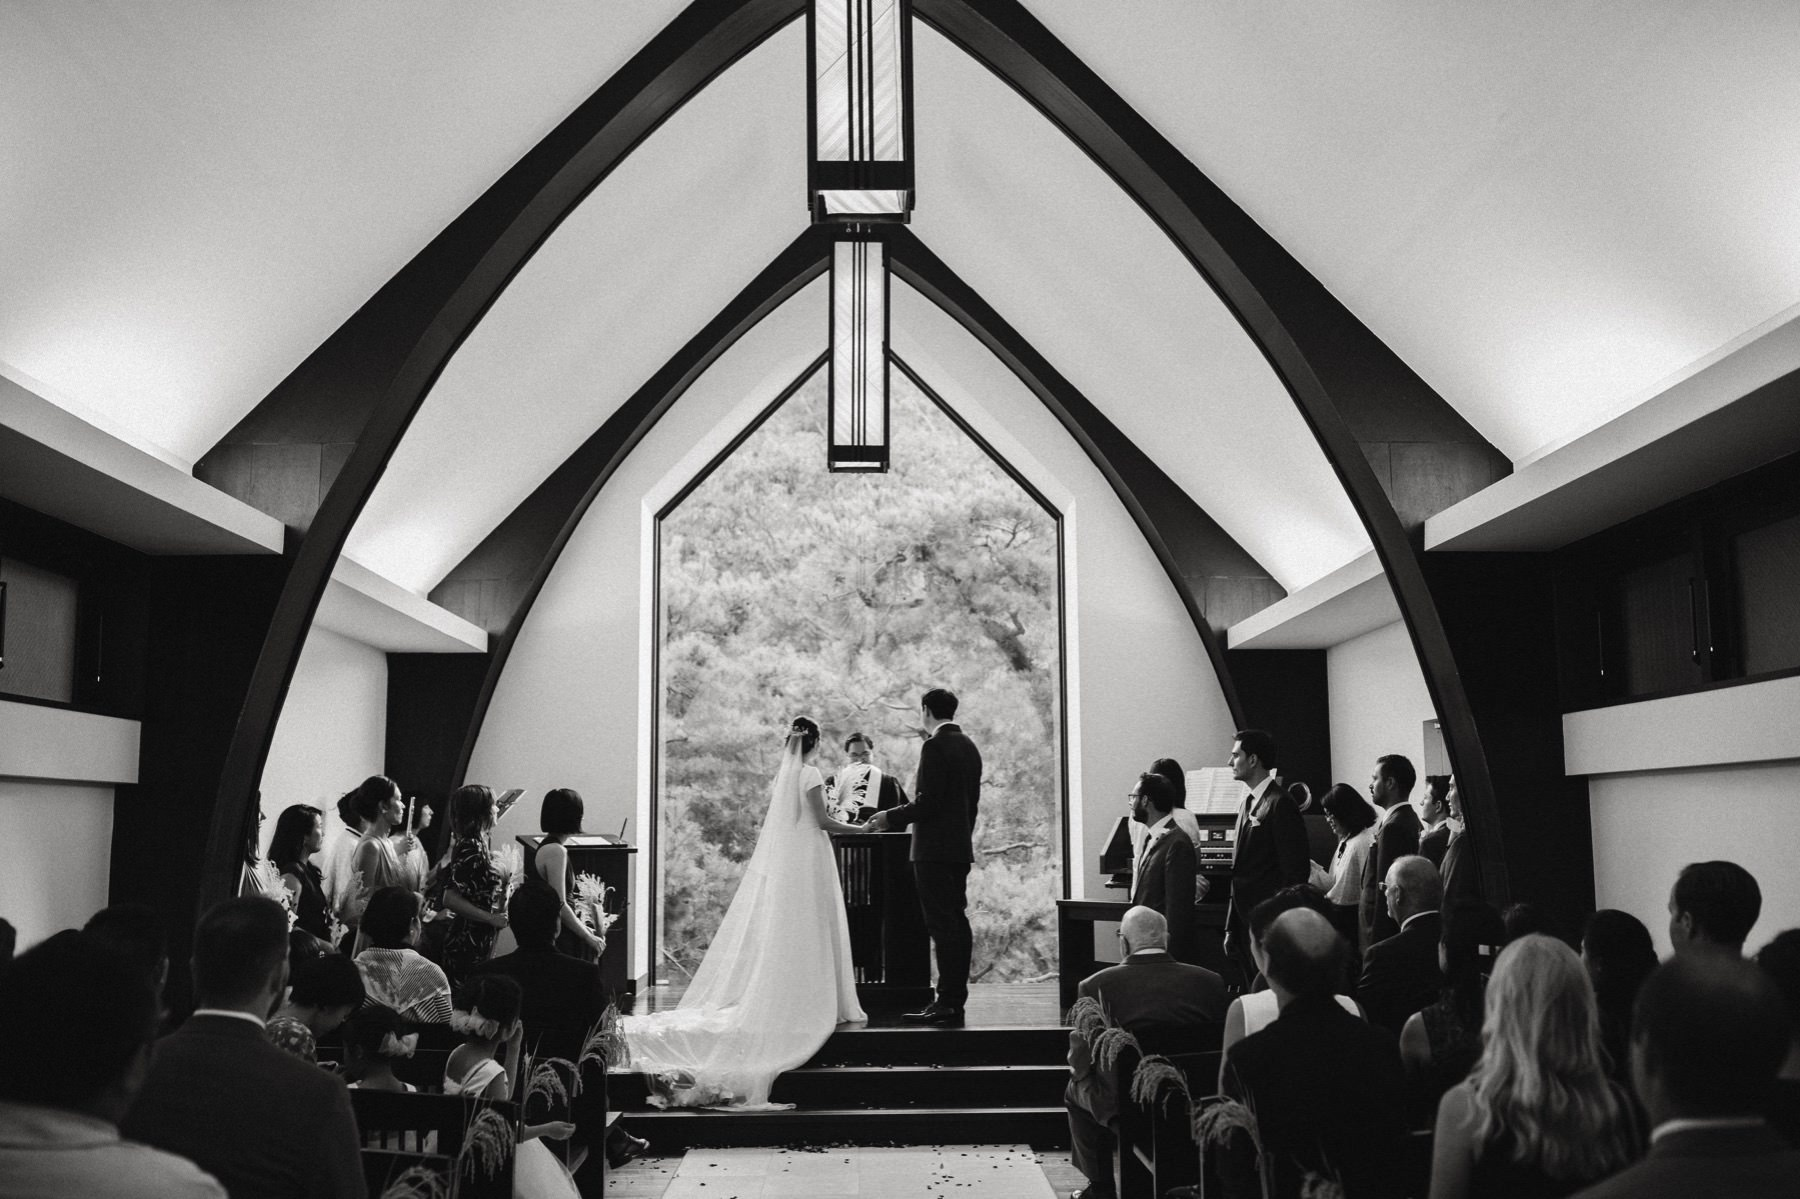 Shozan resort Kyoto chapel wedding